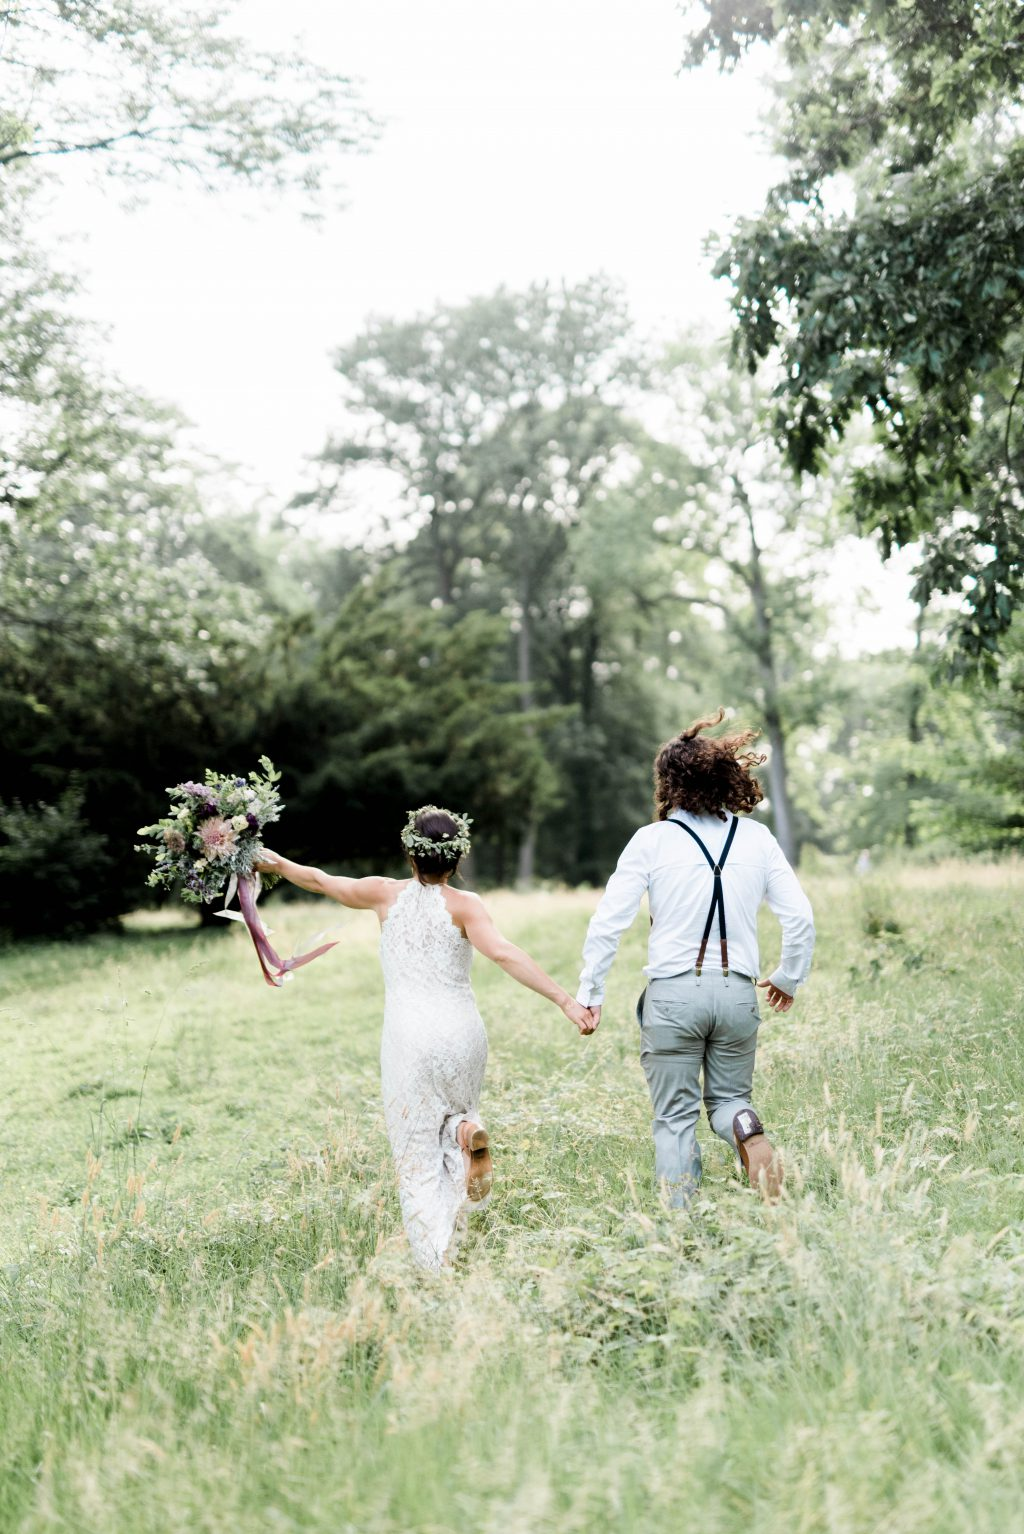 awbury-arboretum-wedding-DIY-boho-summer-haley-richter-photography-172